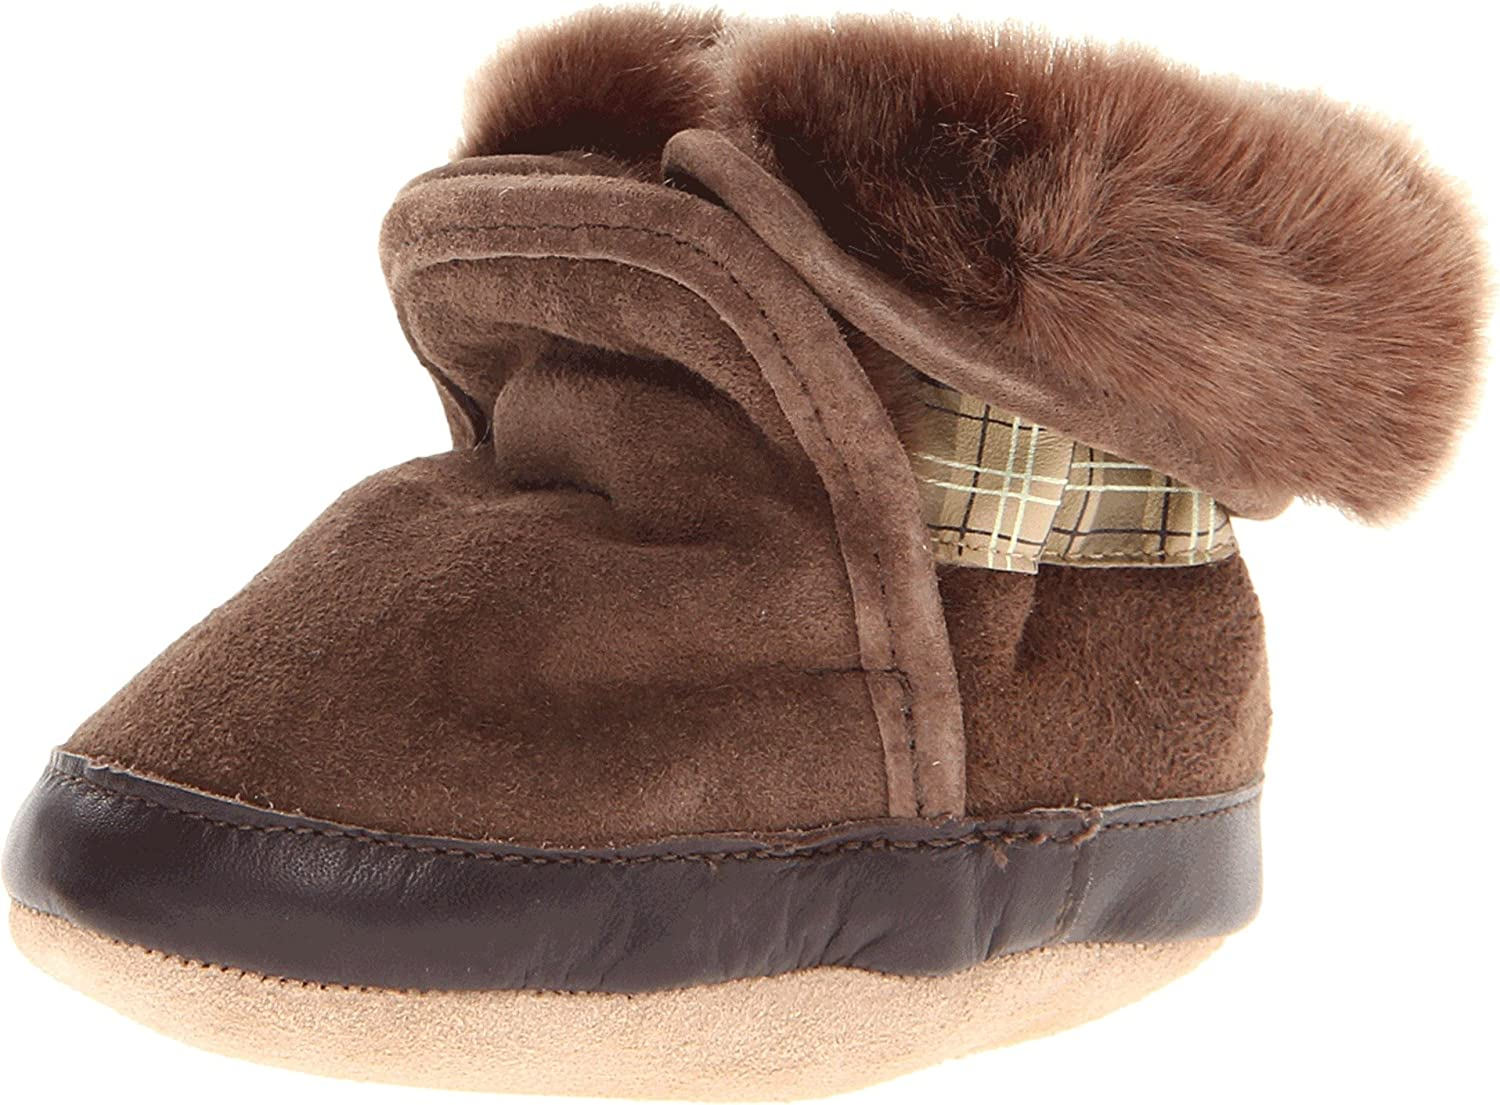 Robeez Cozy Ankle Baby Boots Popular overseas - 12-18 Brown 100% quality warranty Months Soft Soles